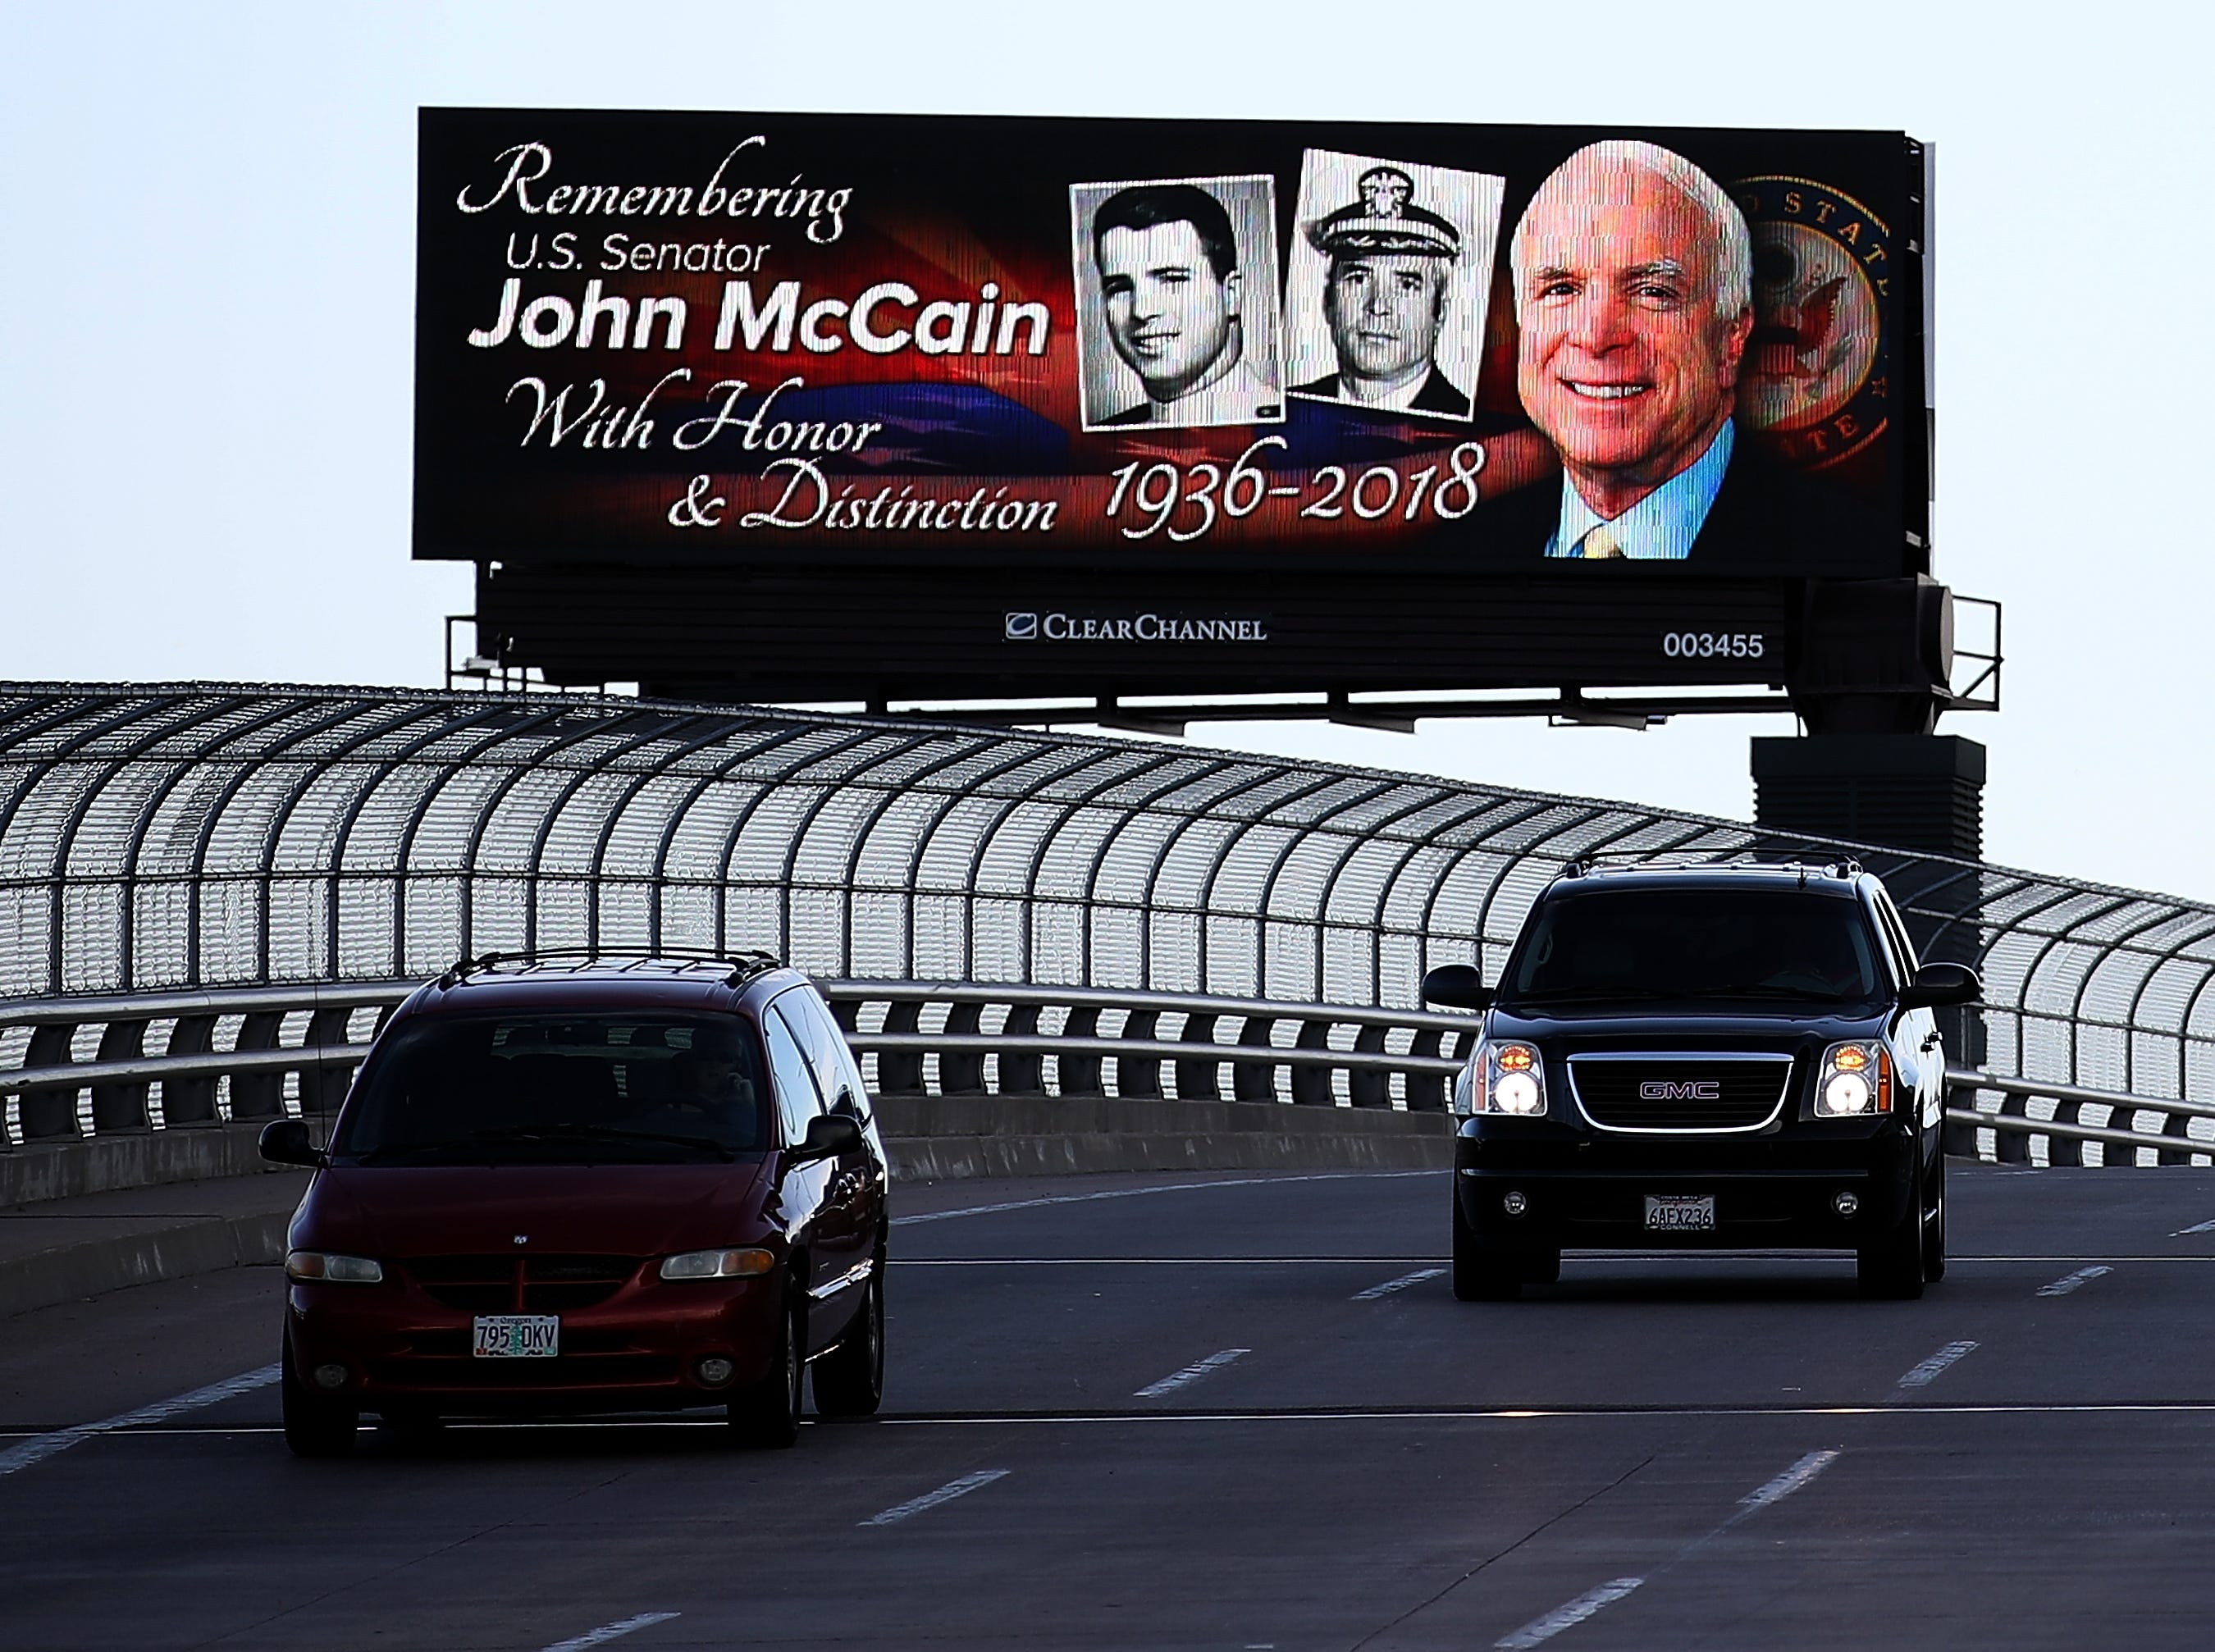 Cars drive by a billboard with a message honoring U.S. Sen. John McCain on Aug. 27, 2018 in Phoenix, Arizona.